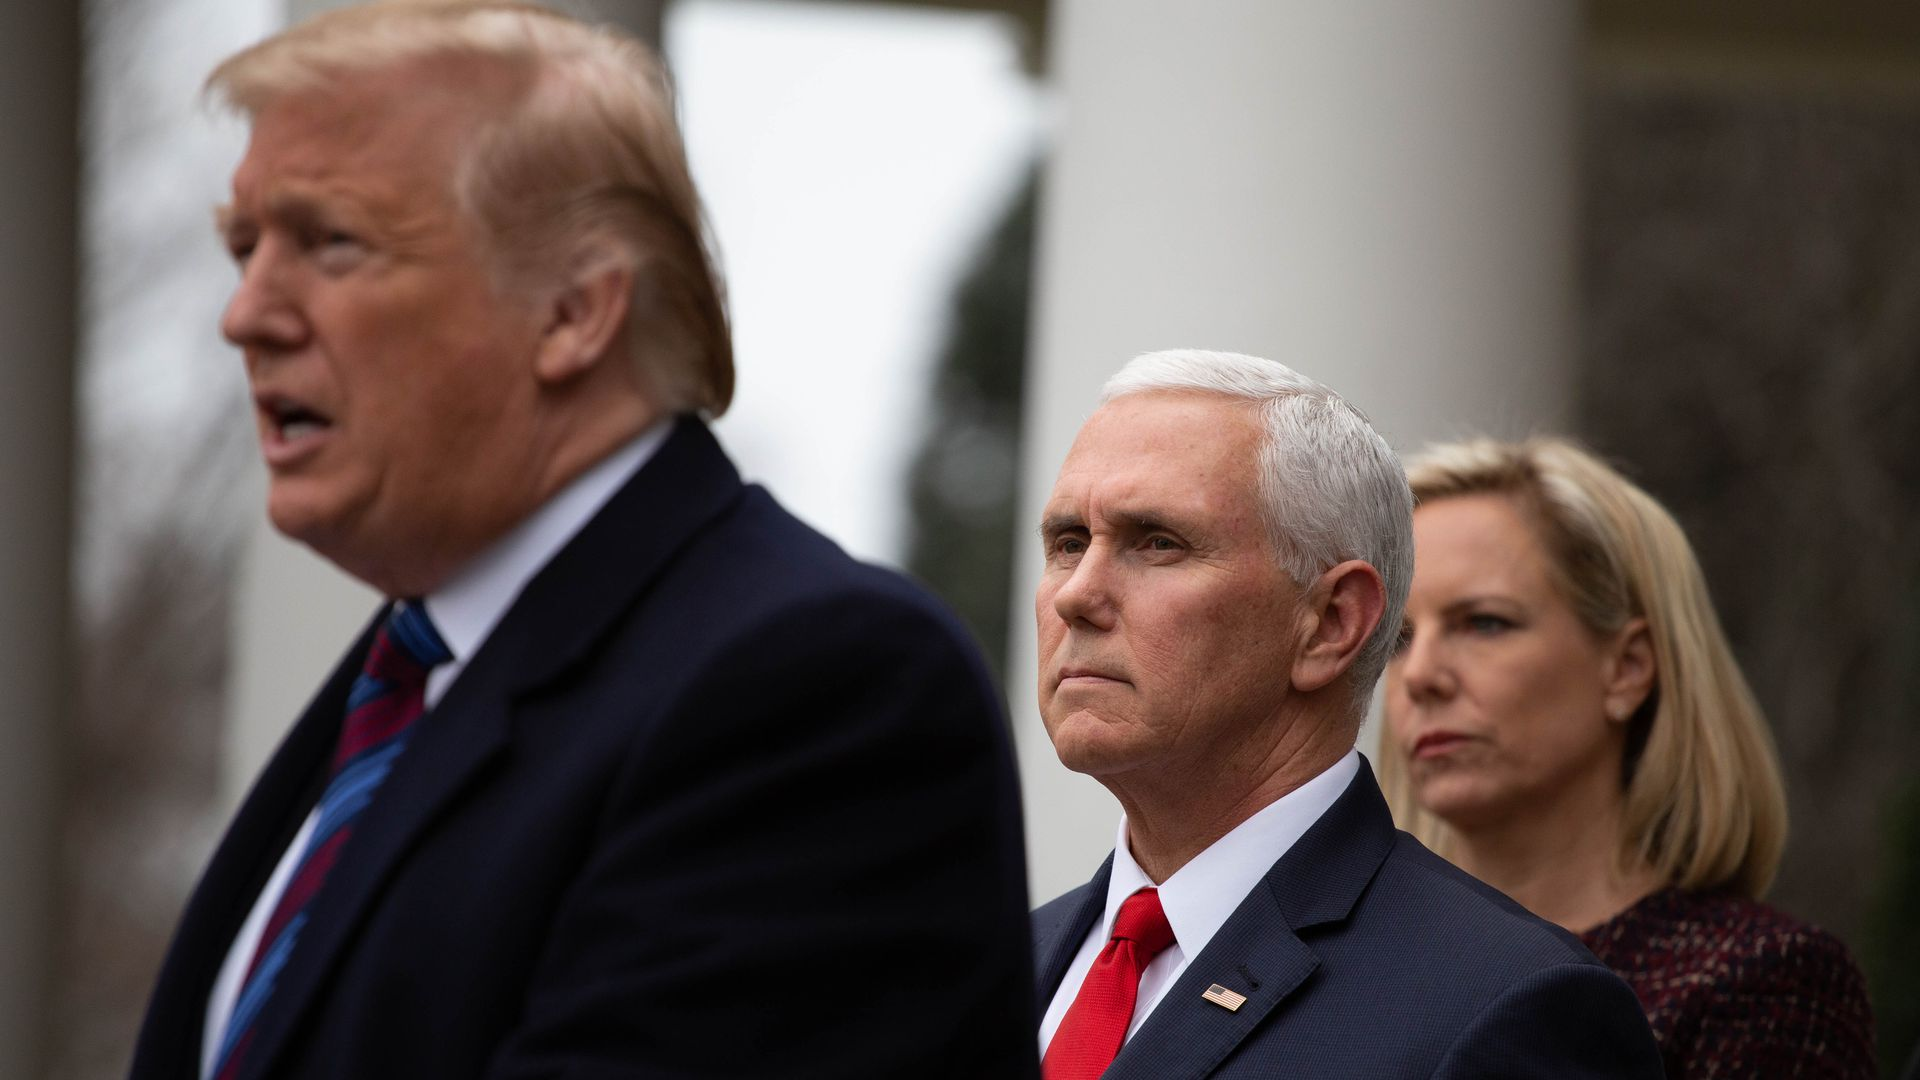 Vice President Mike Pence stands behind President Trump.